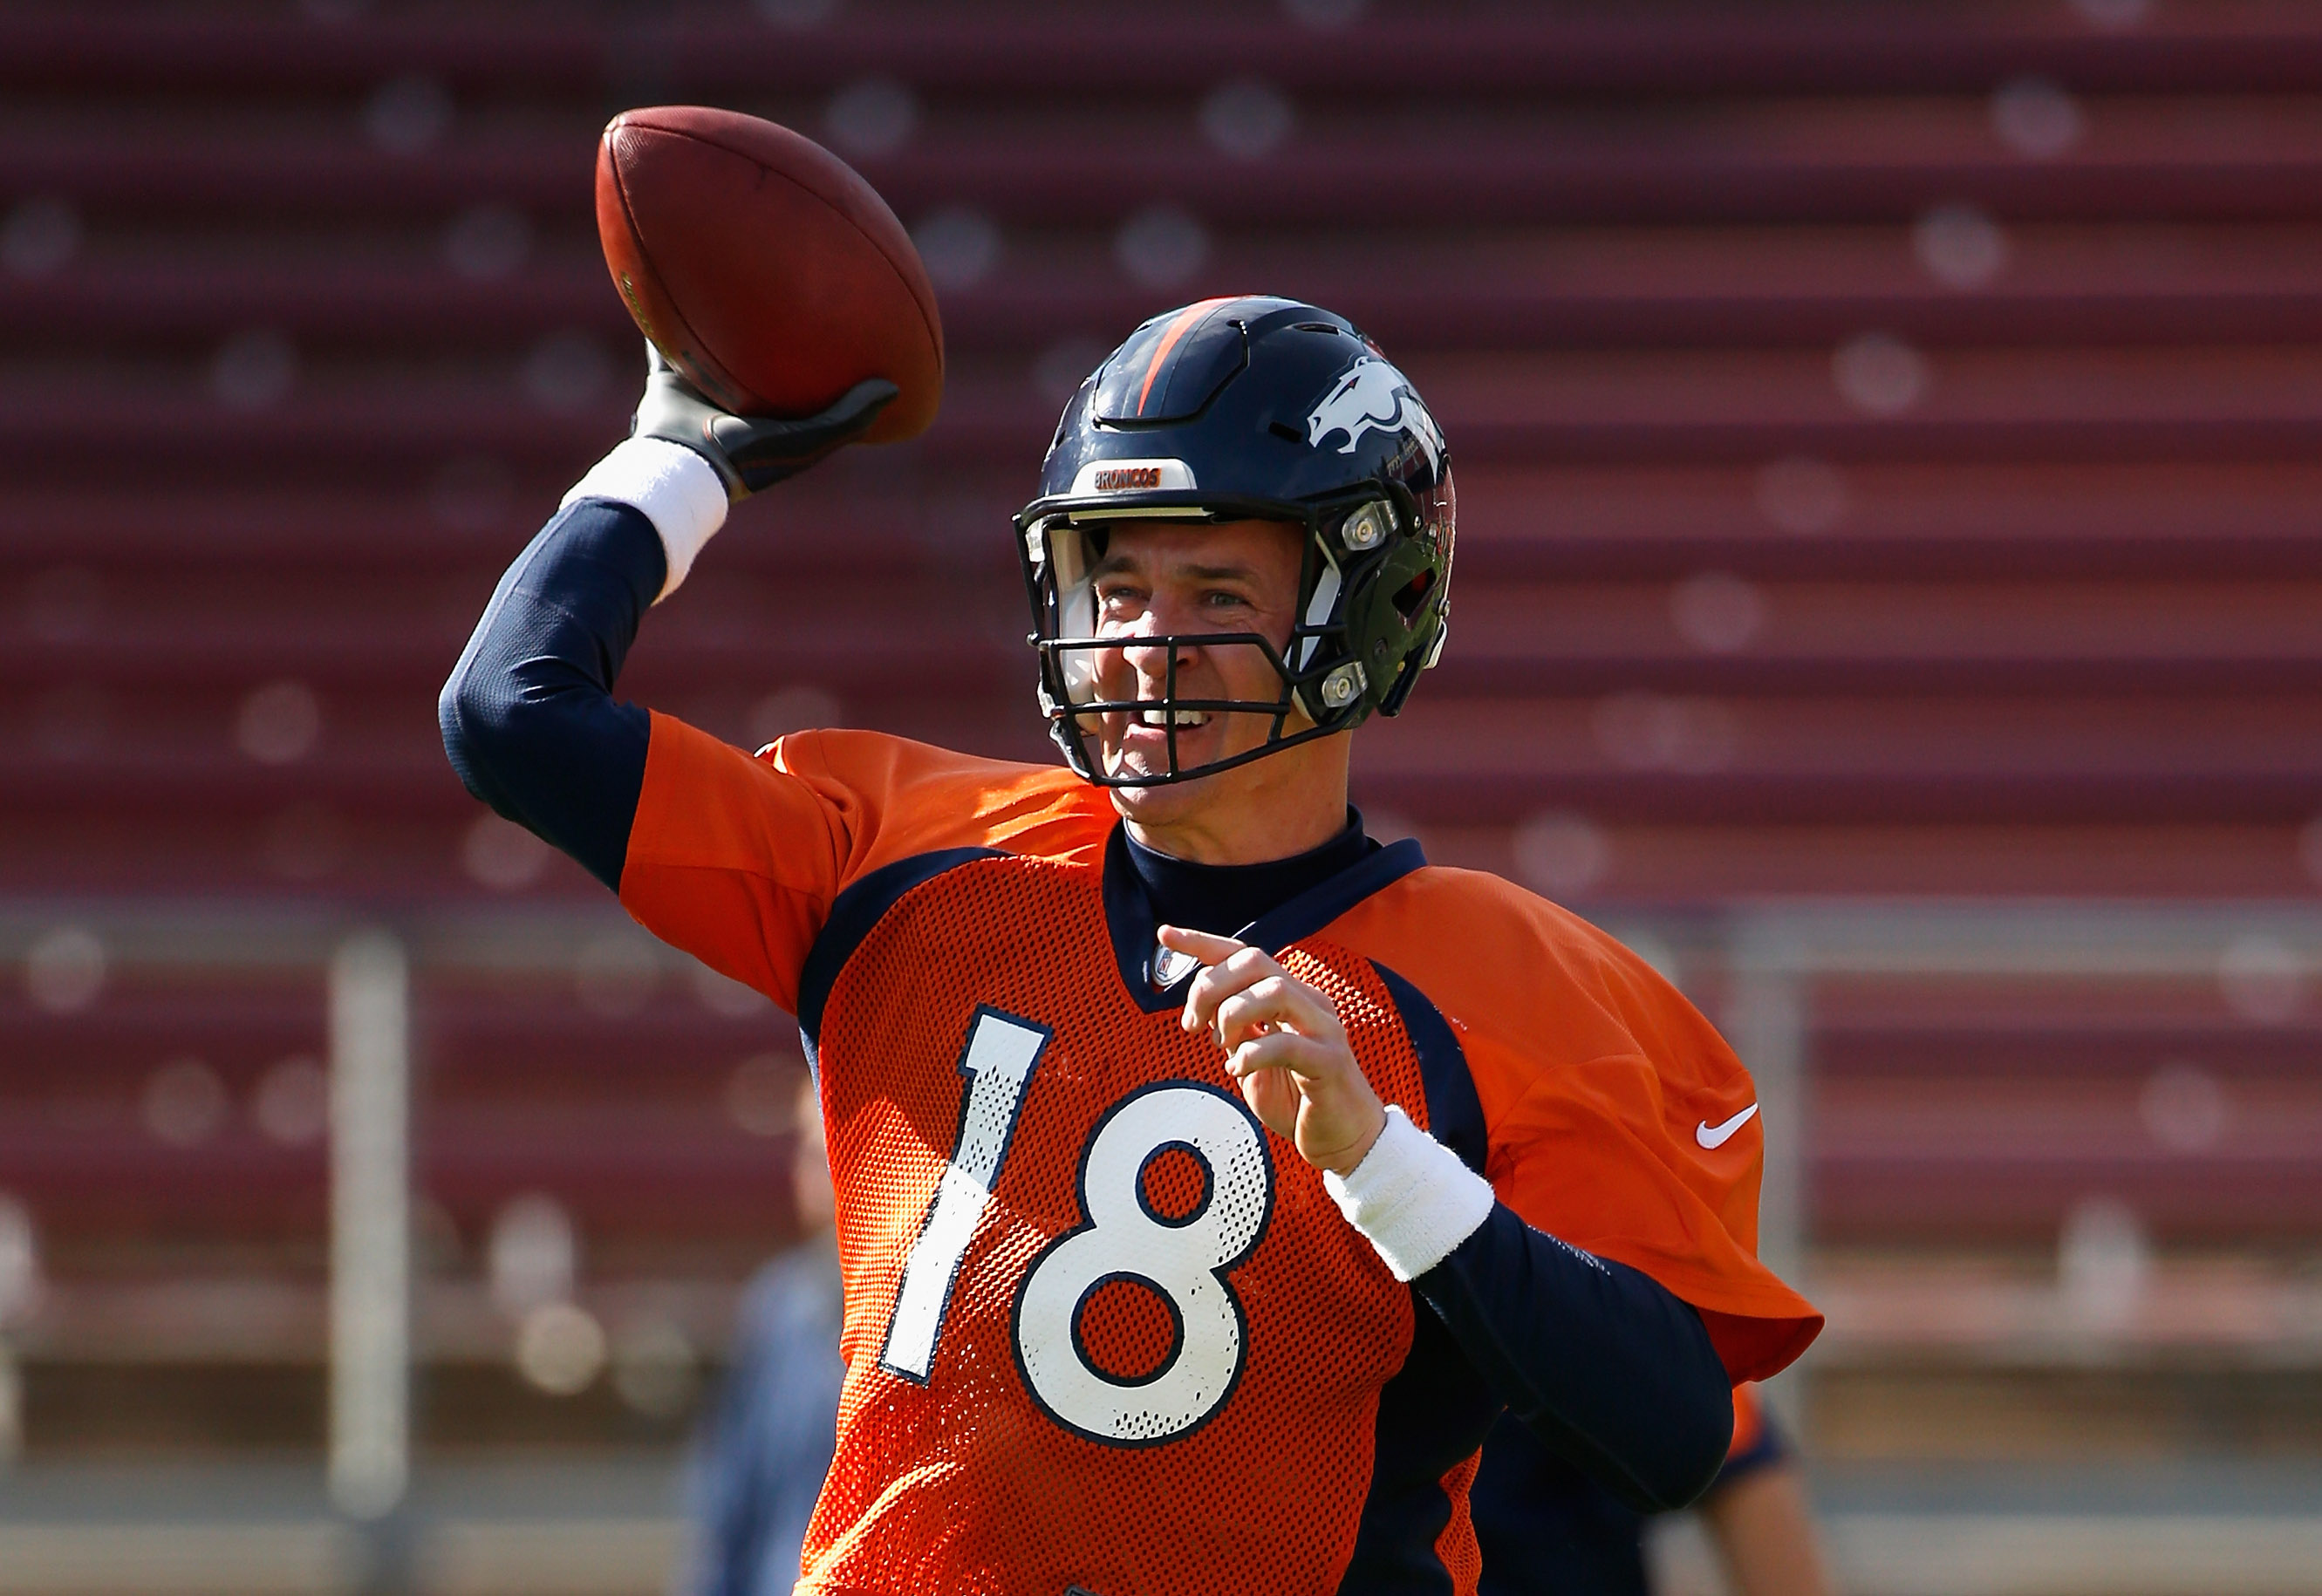 Super bowl 2016 las vegas odds what is the over under for the